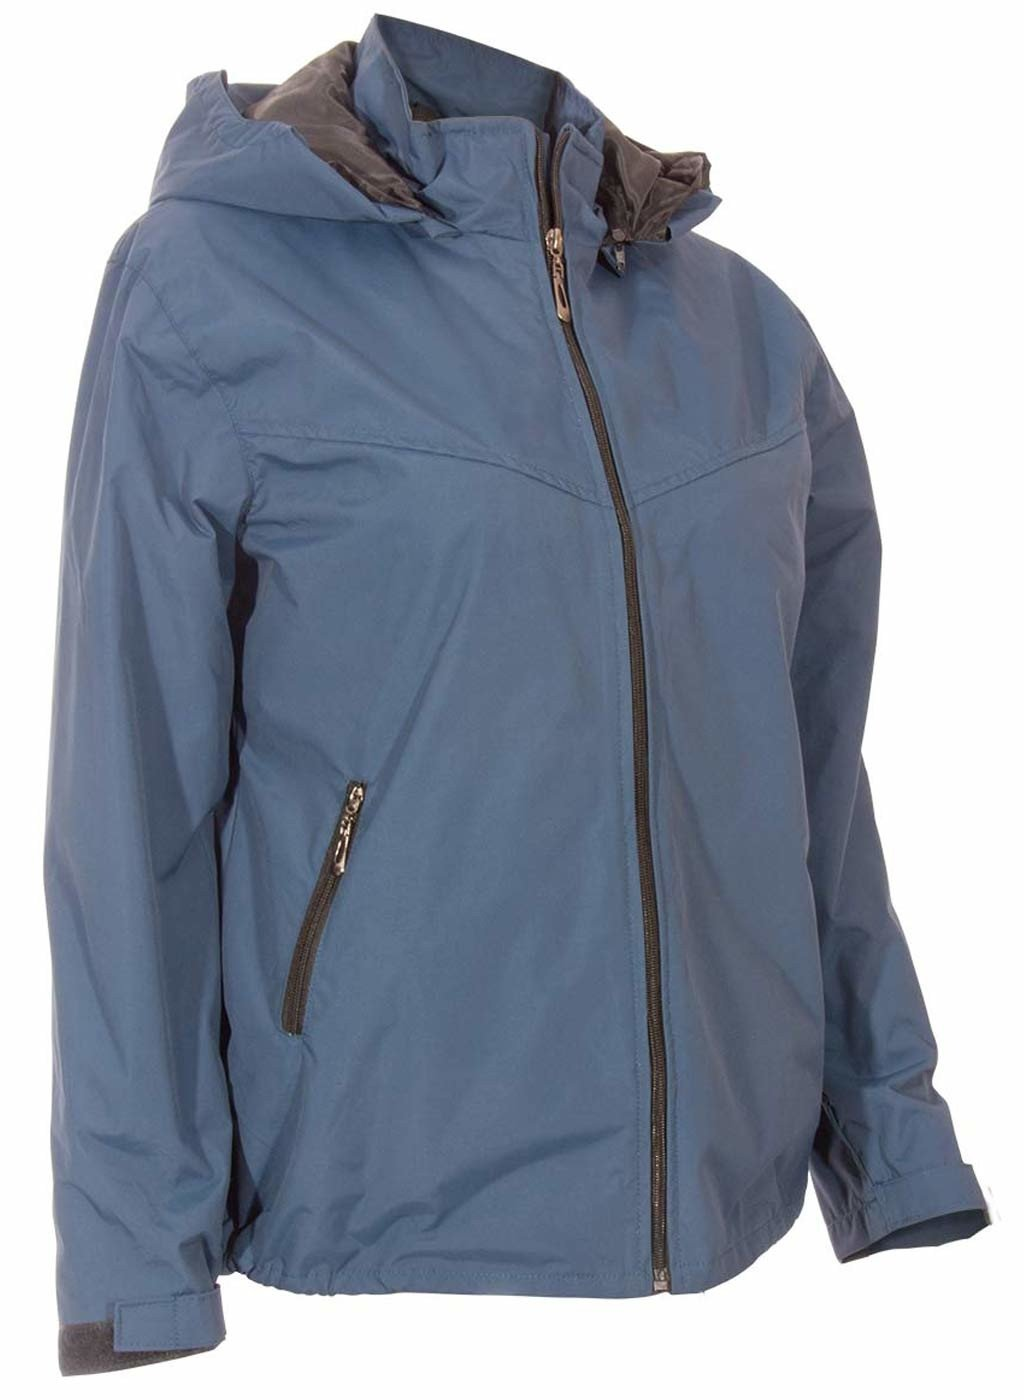 Blue Mens Soft Shell Travel Jacket | Global Travel Clothings